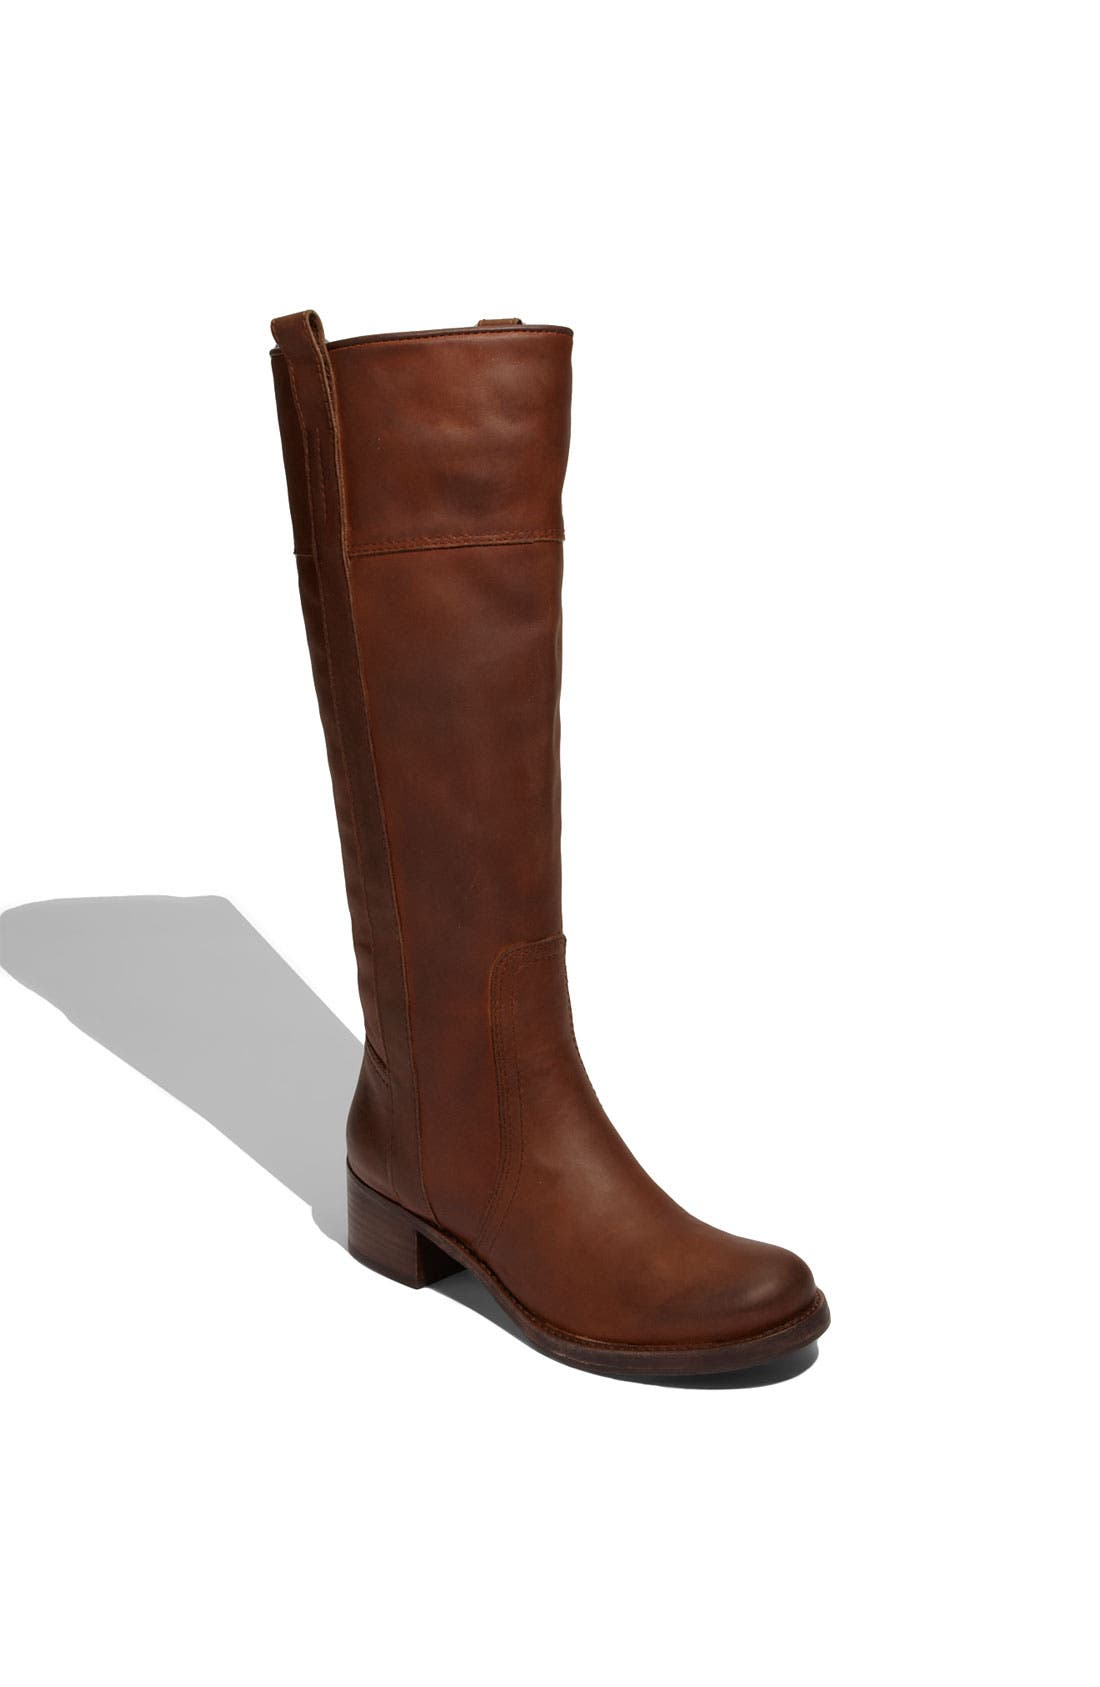 Alternate Image 1 Selected - Halogen® 'Saffron' Tall Riding Boot